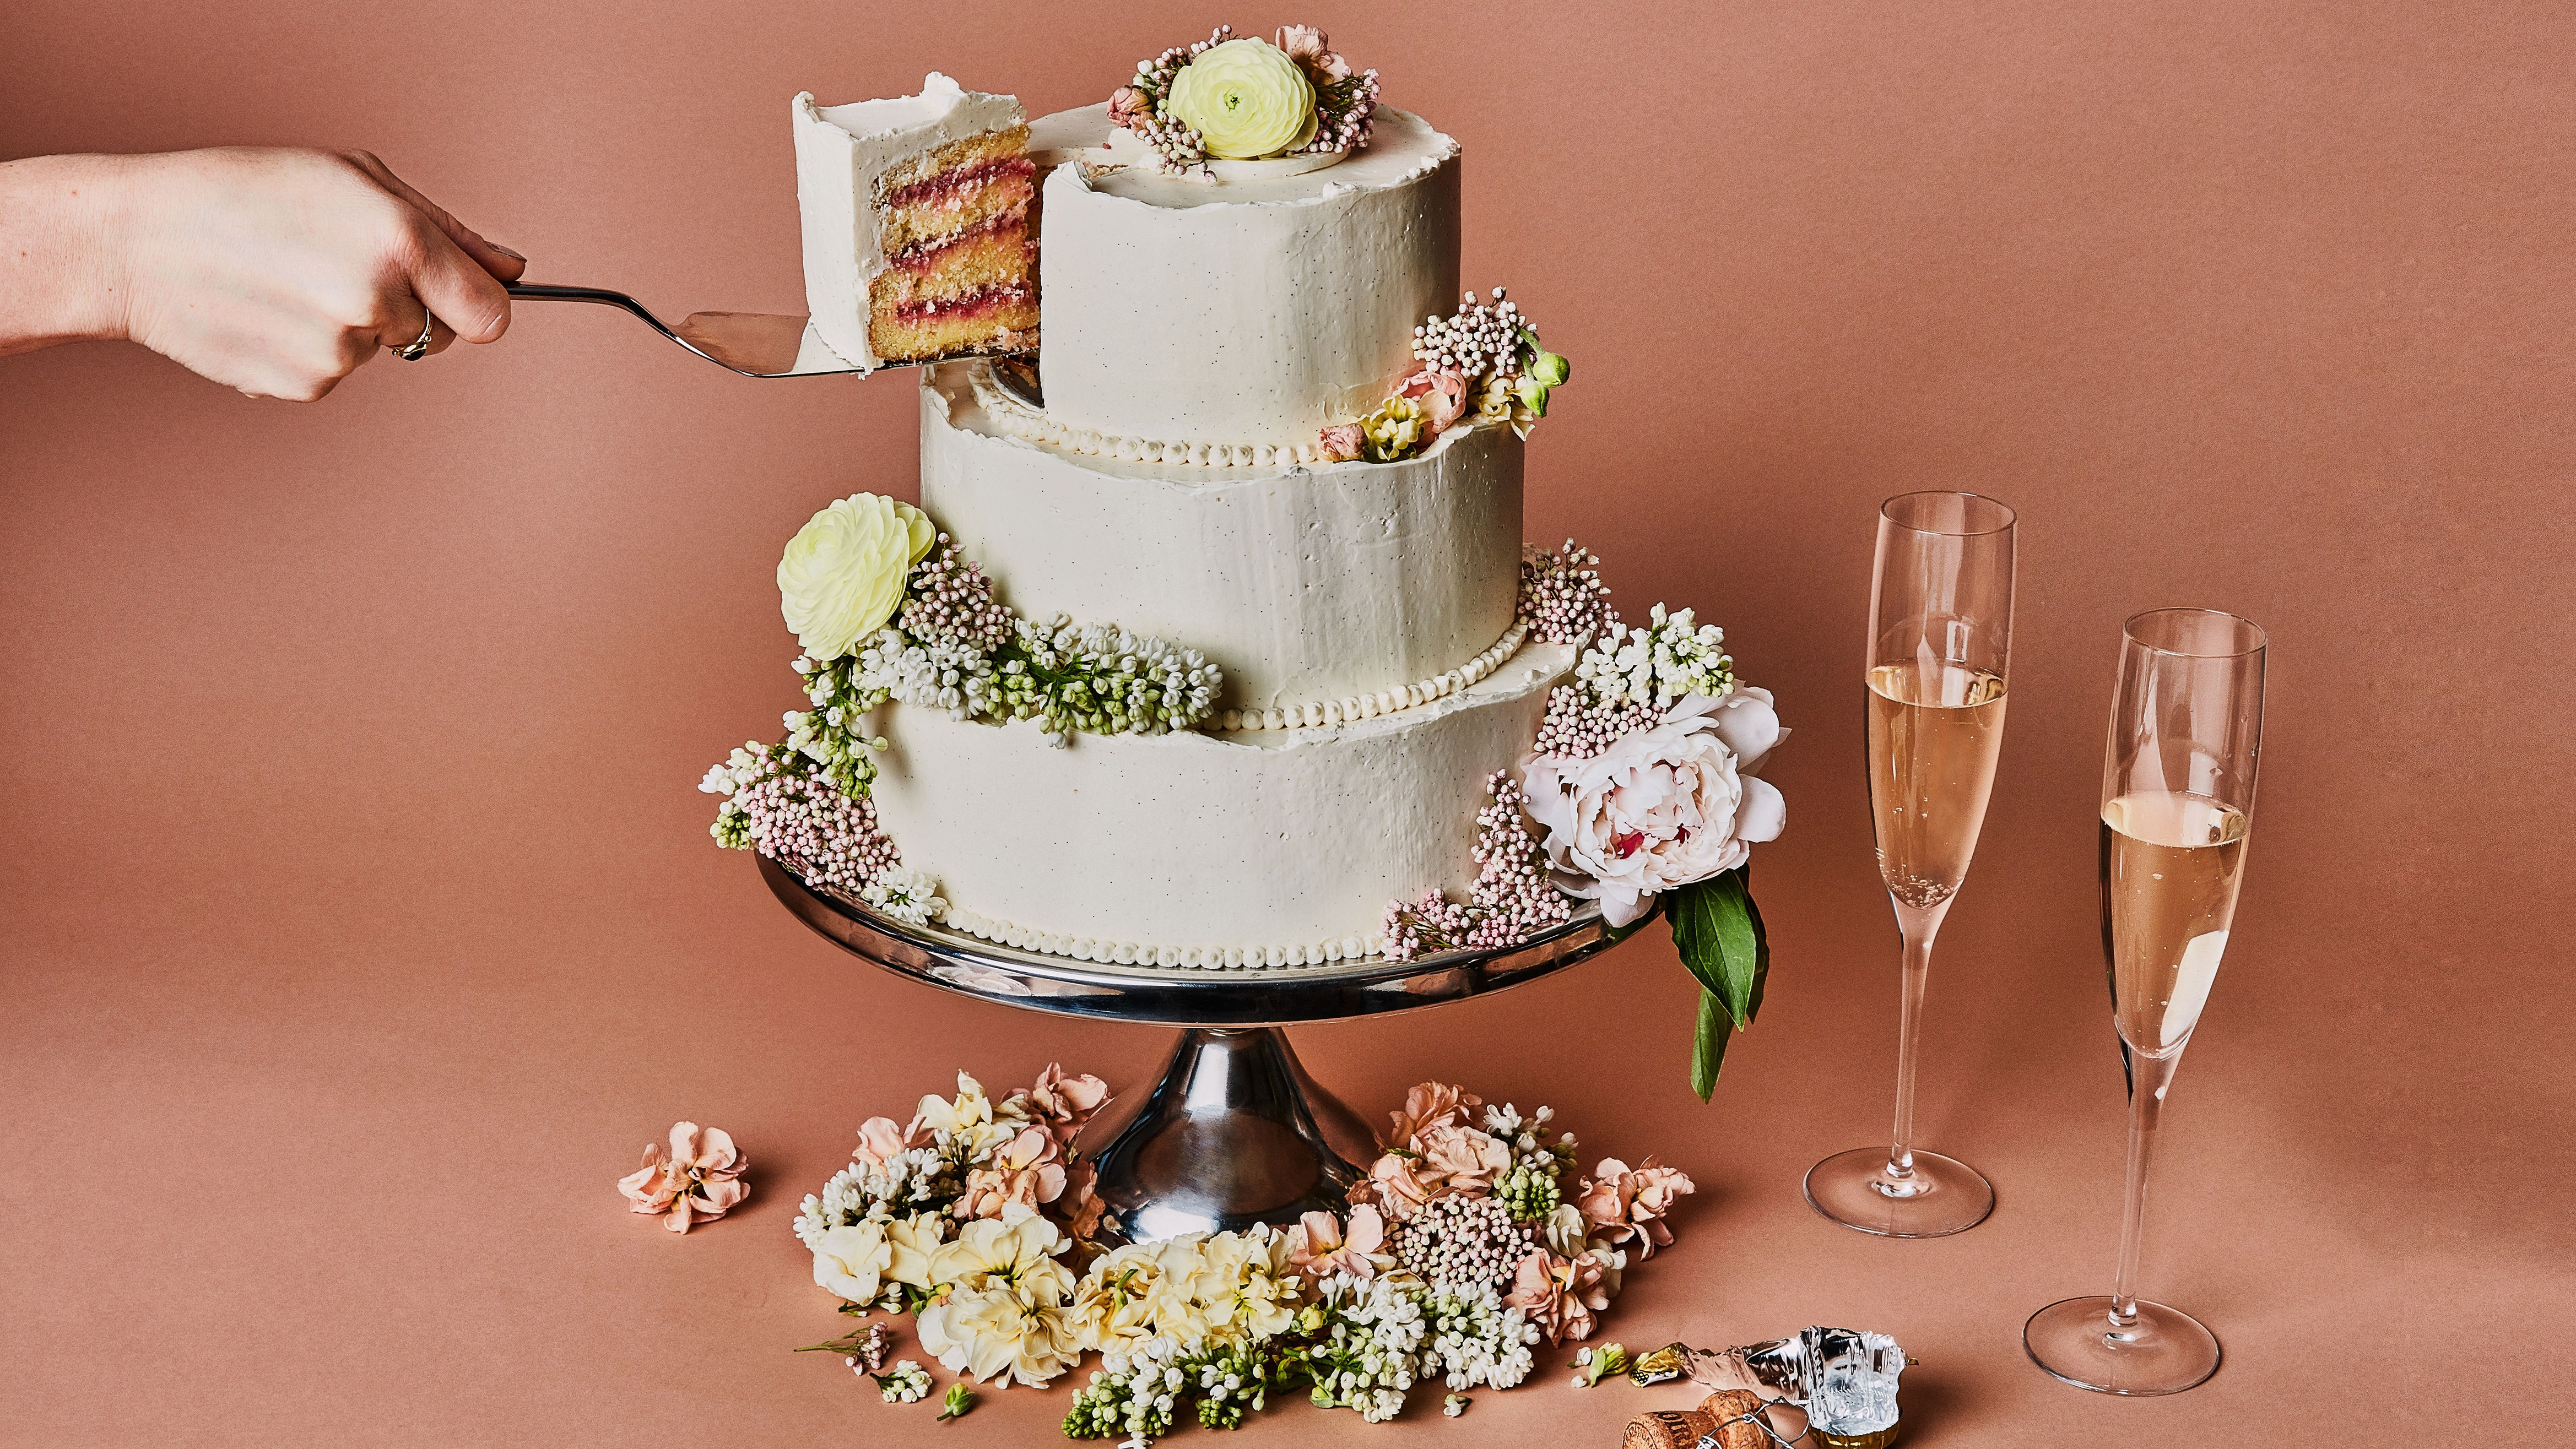 Royal Wedding Cake Recipe  A Royal Wedding Cake Recipe In Honor of Harry and Meghan